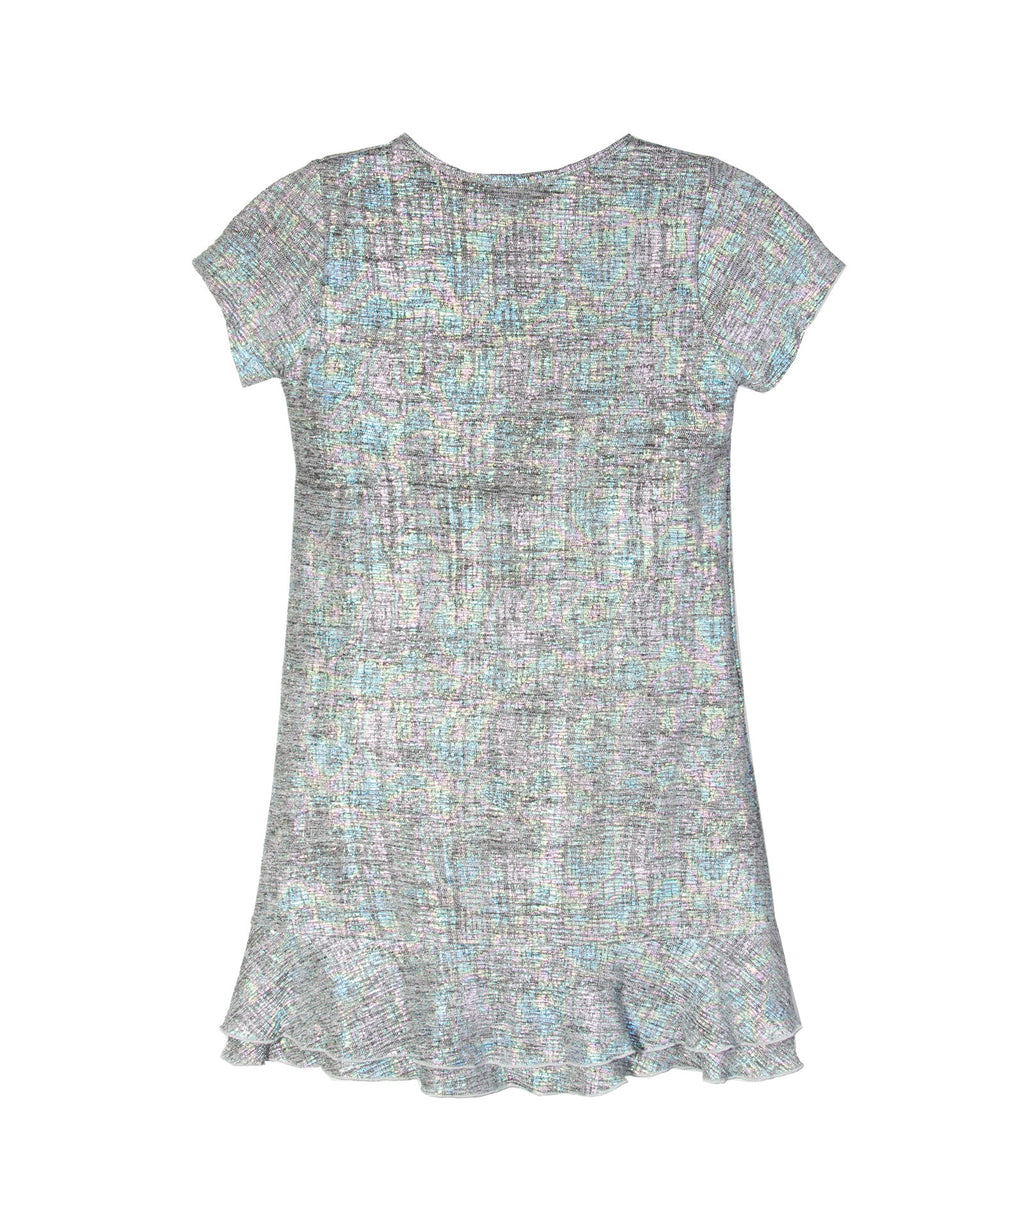 Flowers By Zoe Girls Grey Rainbow Dress